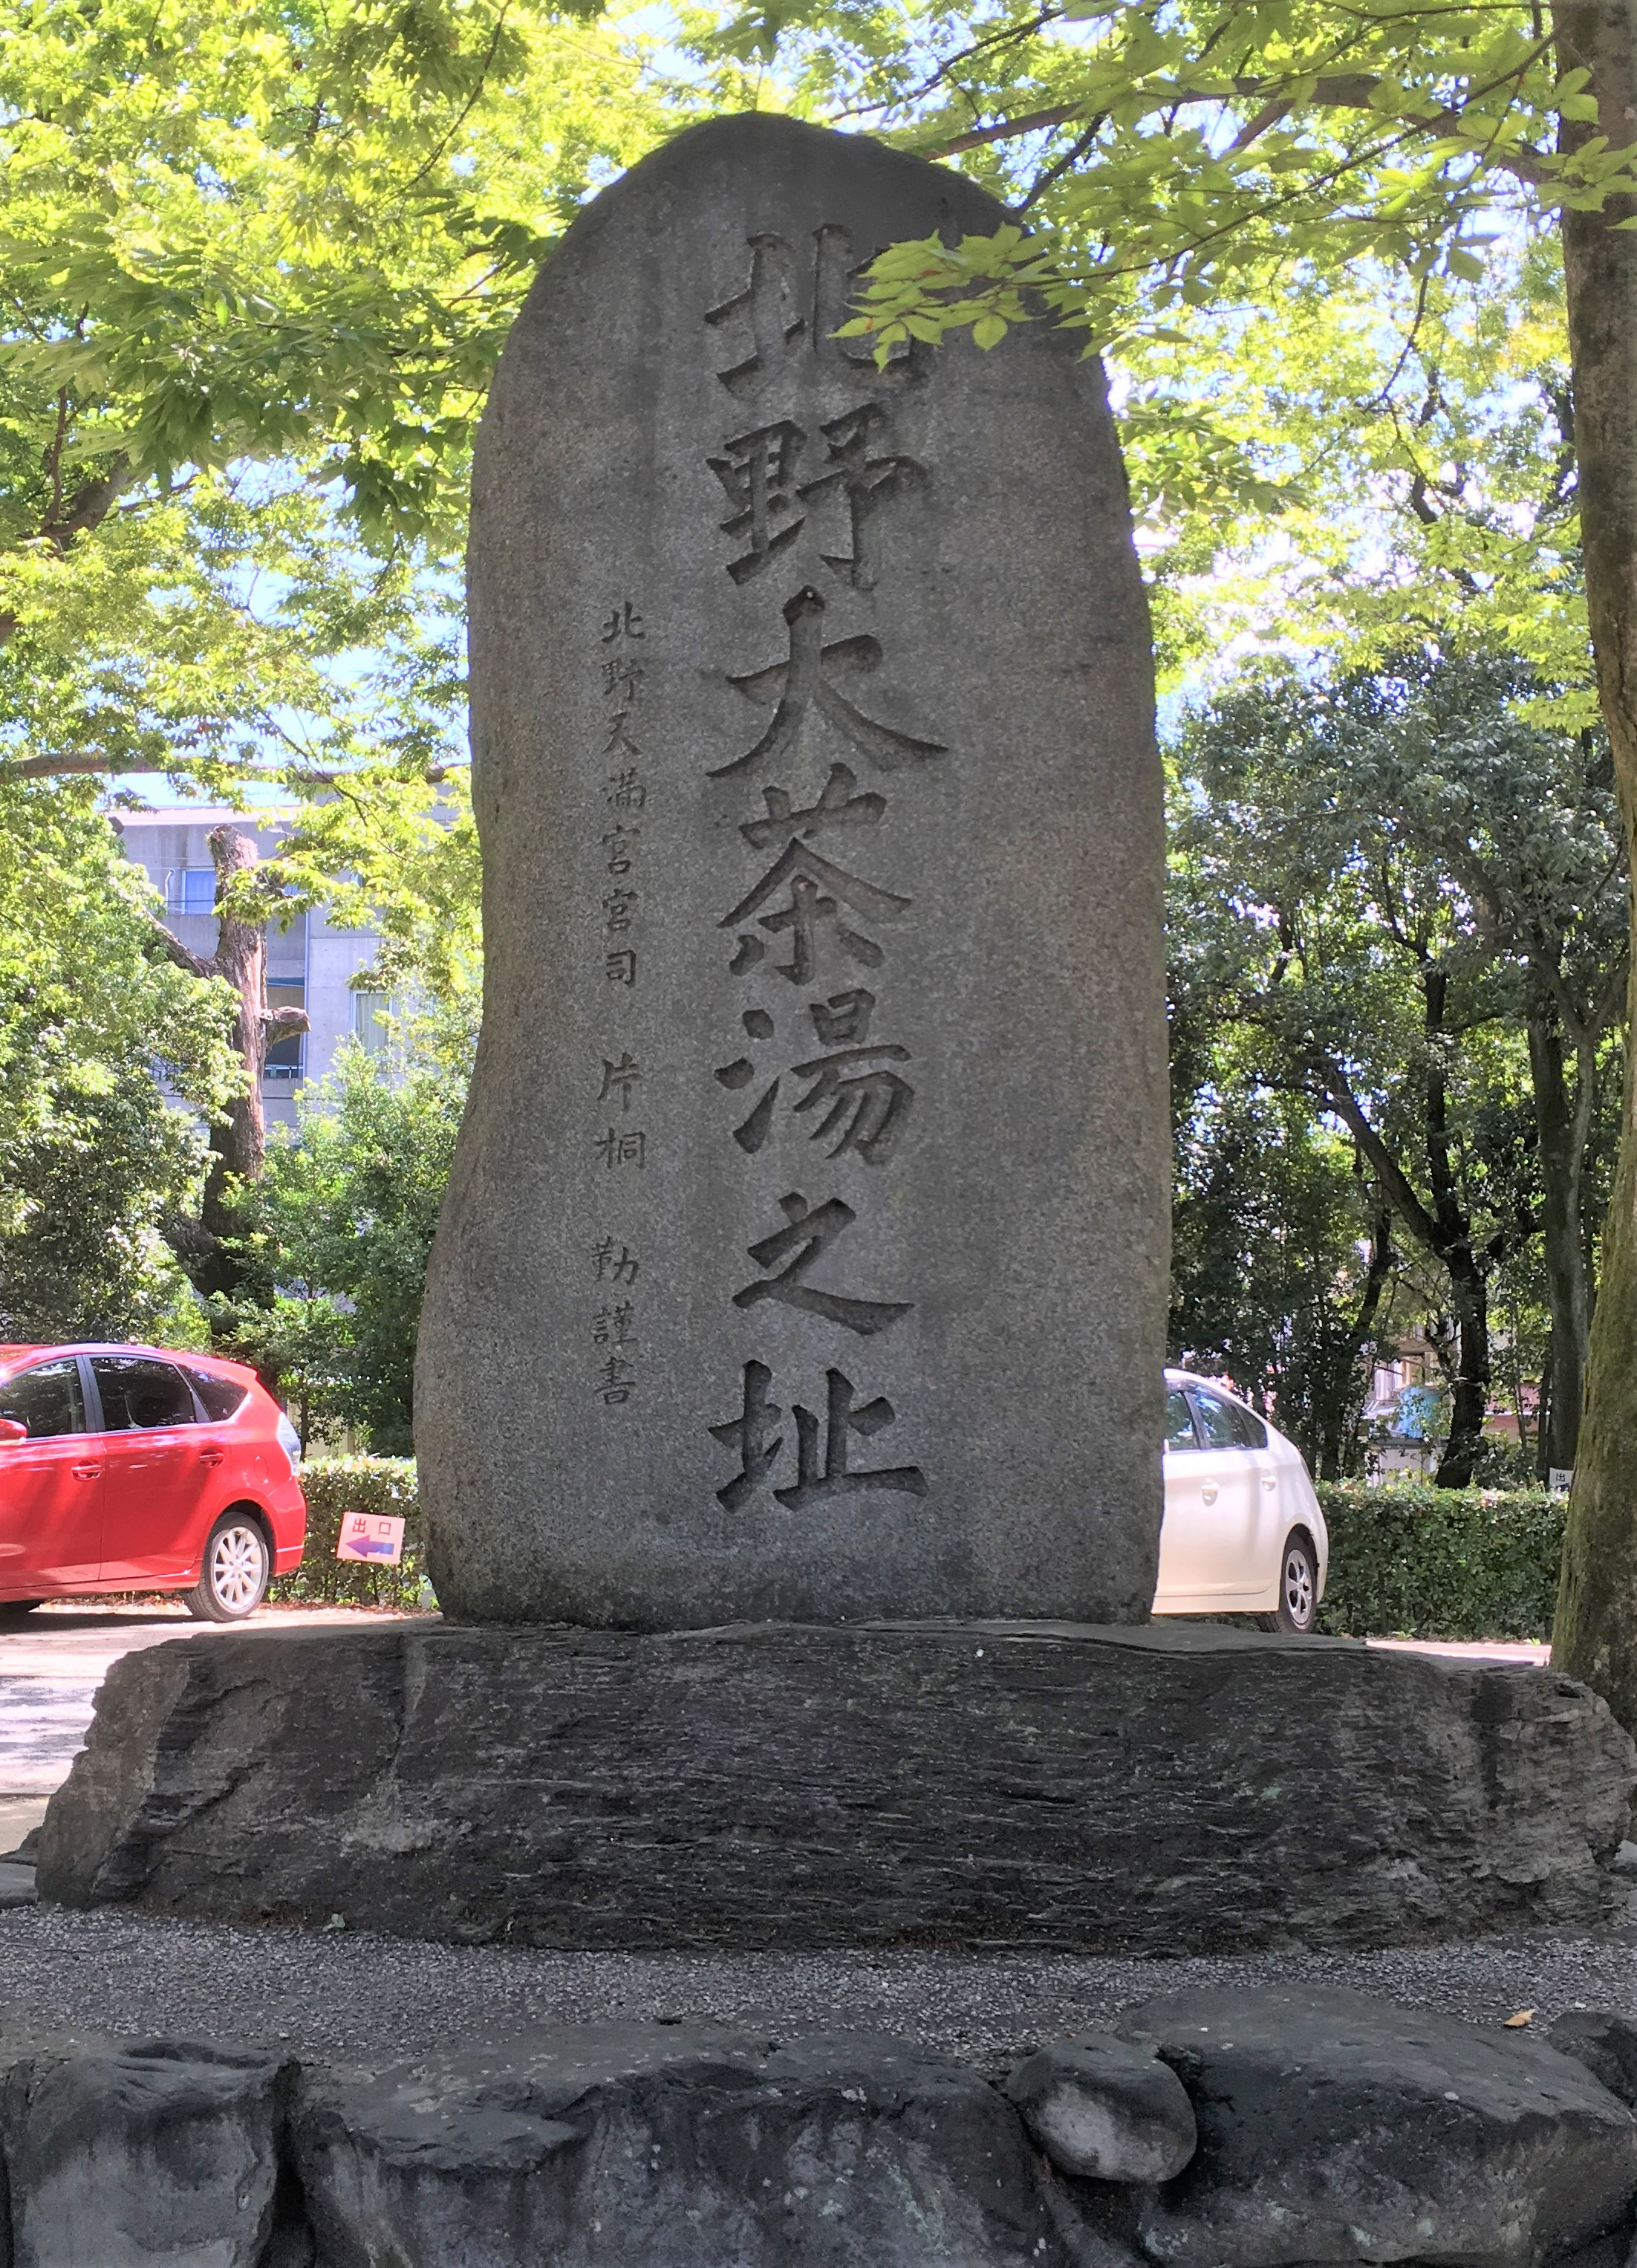 large stone tablet commemorating Hideyoshi's gran tea ceremony